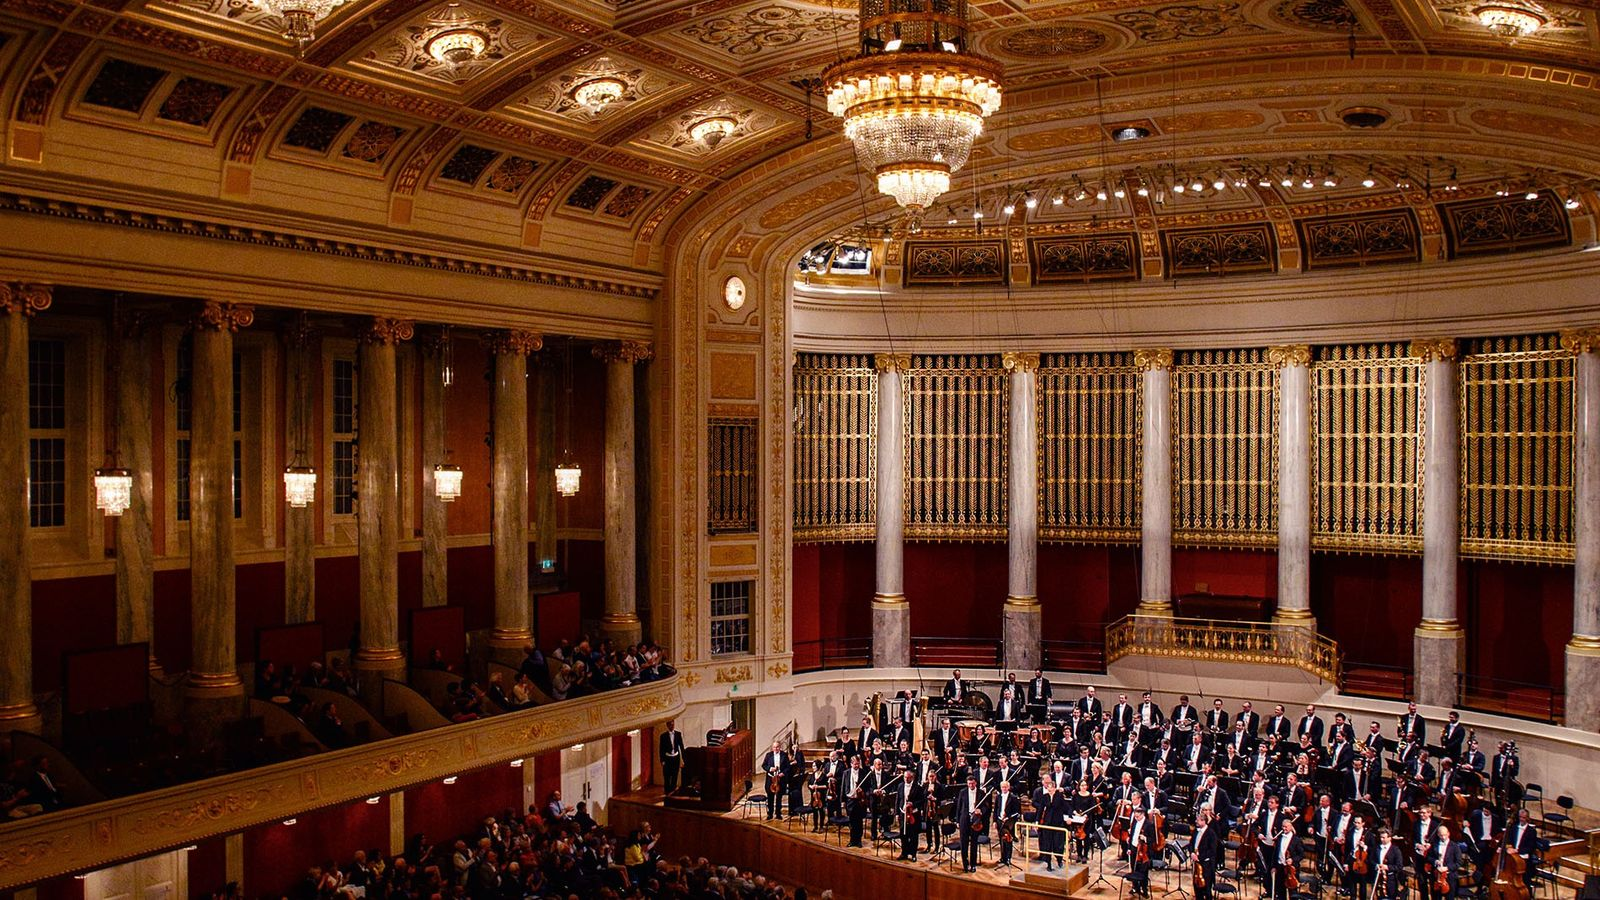 Orchestra on stage at the Vienna Opera House.